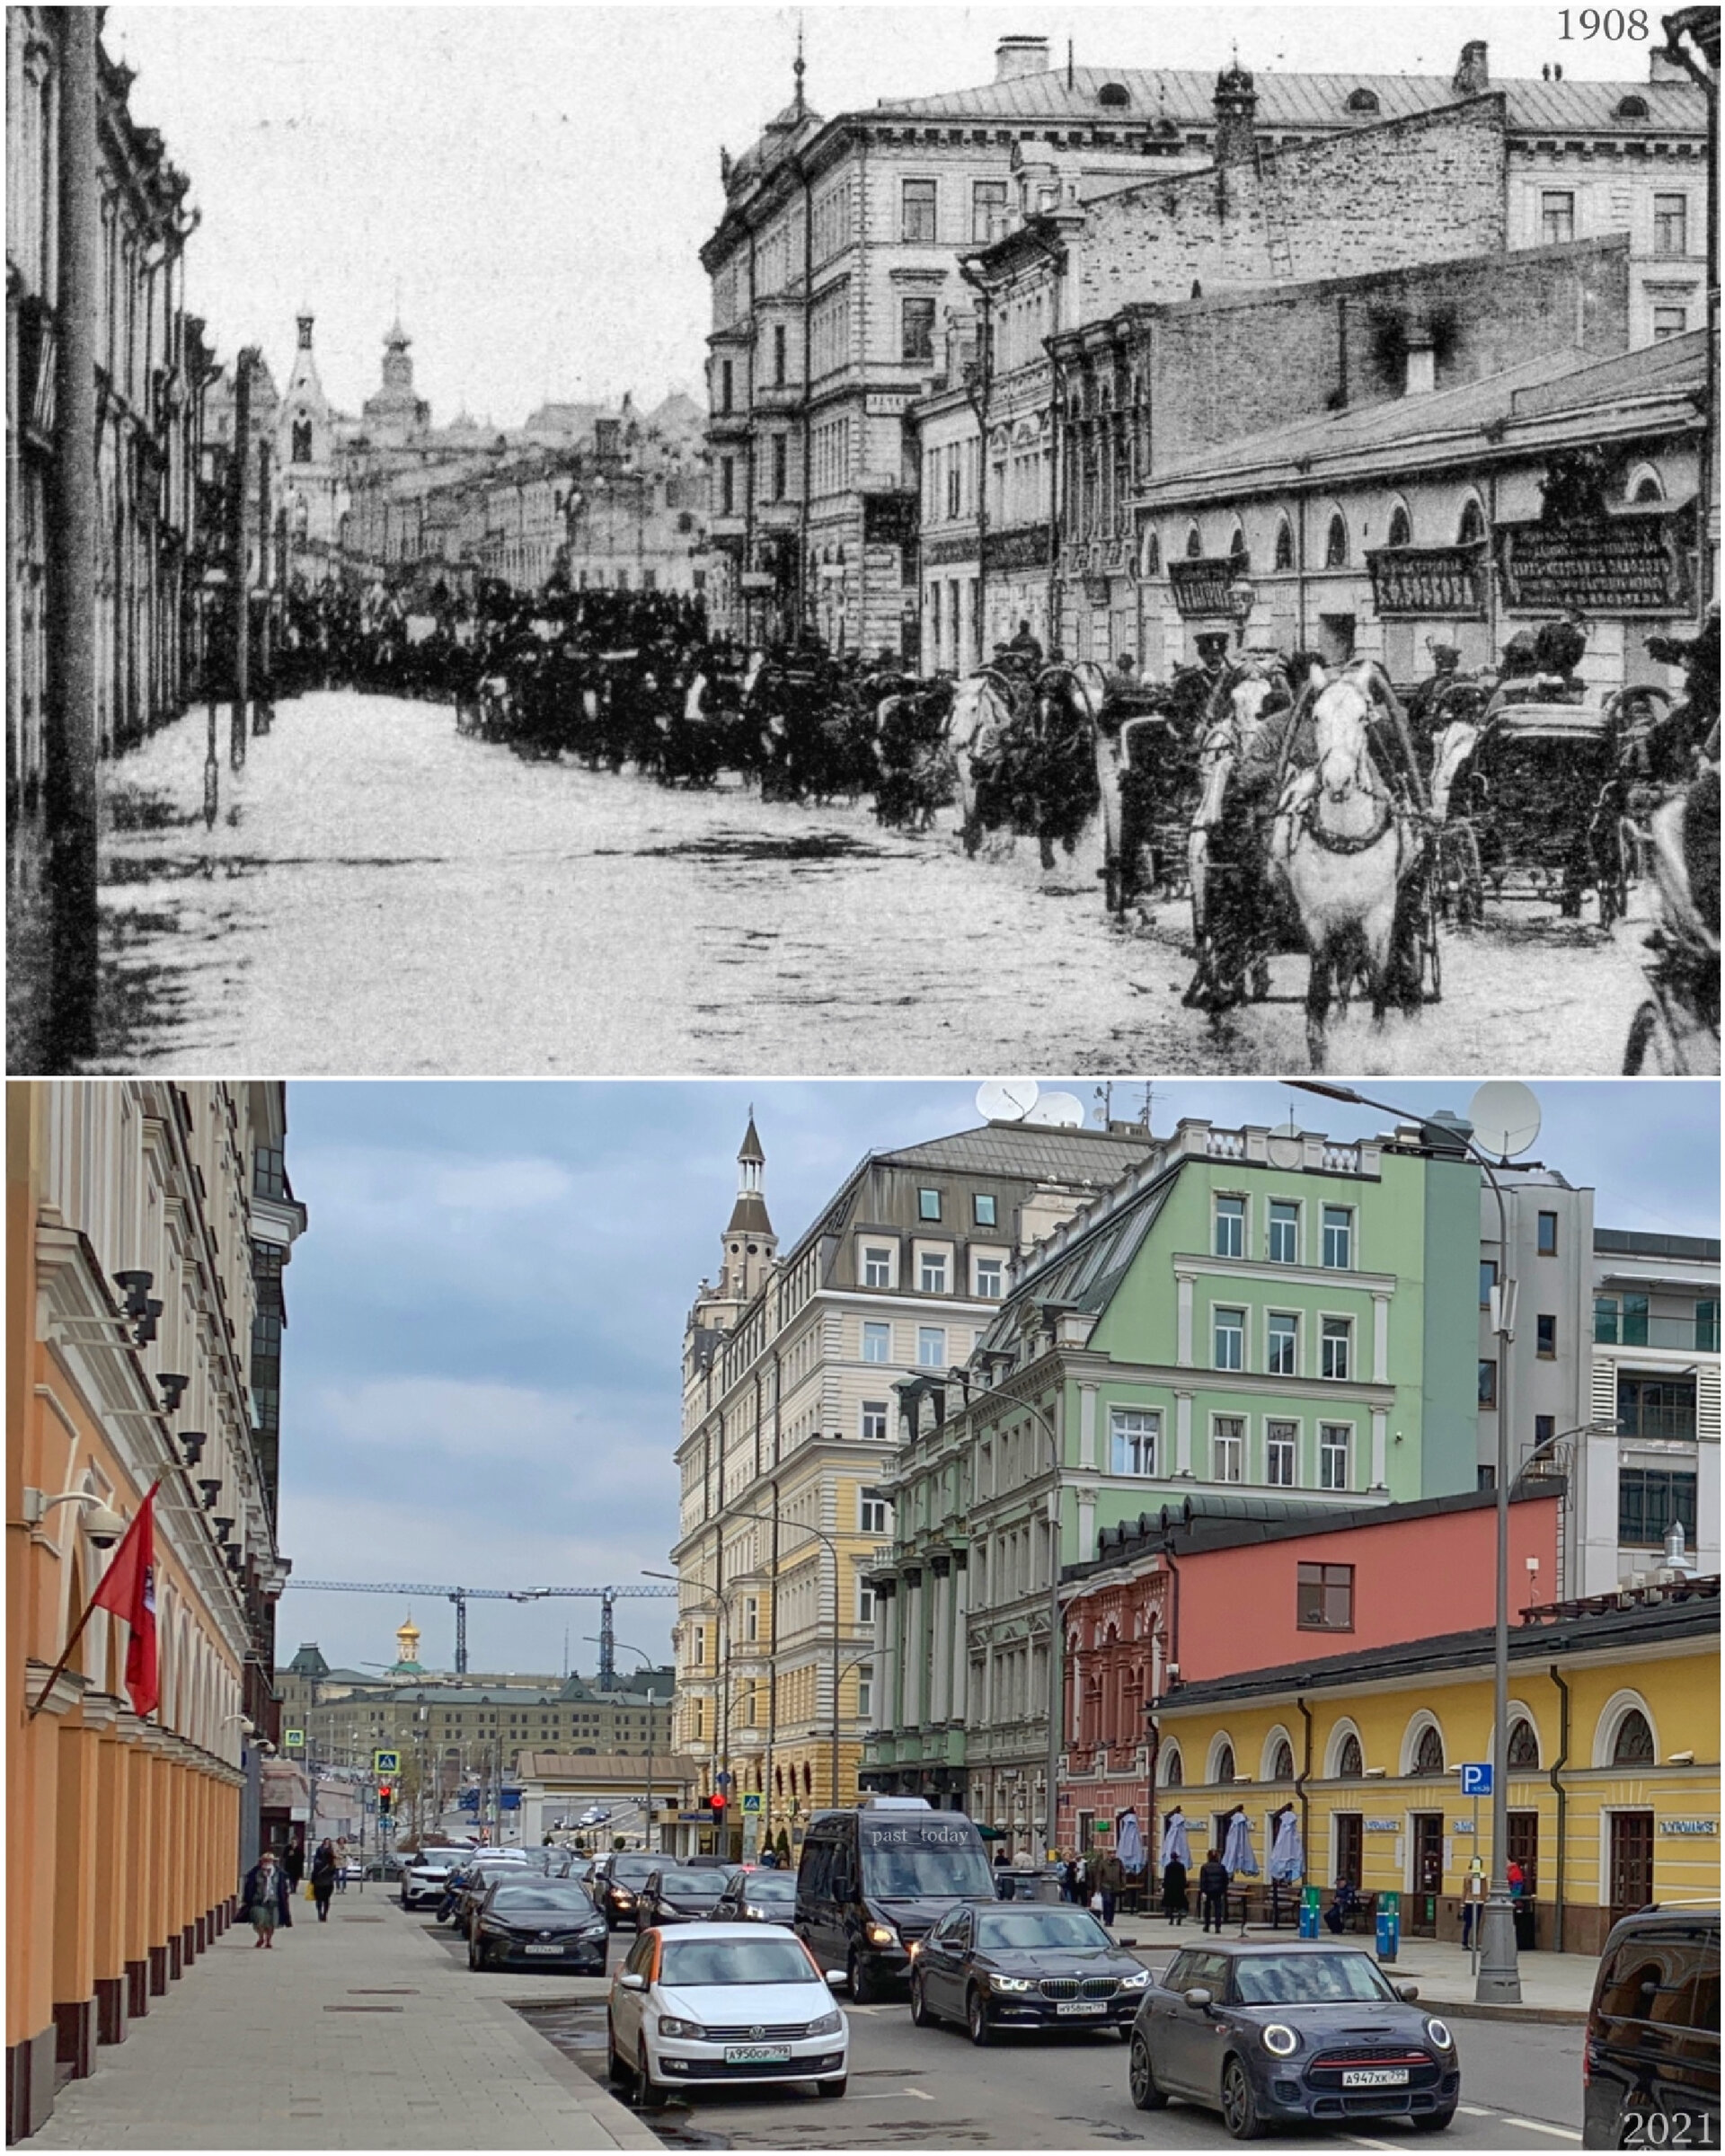 Flooded Moscow 1908 Vs Moscow of Today